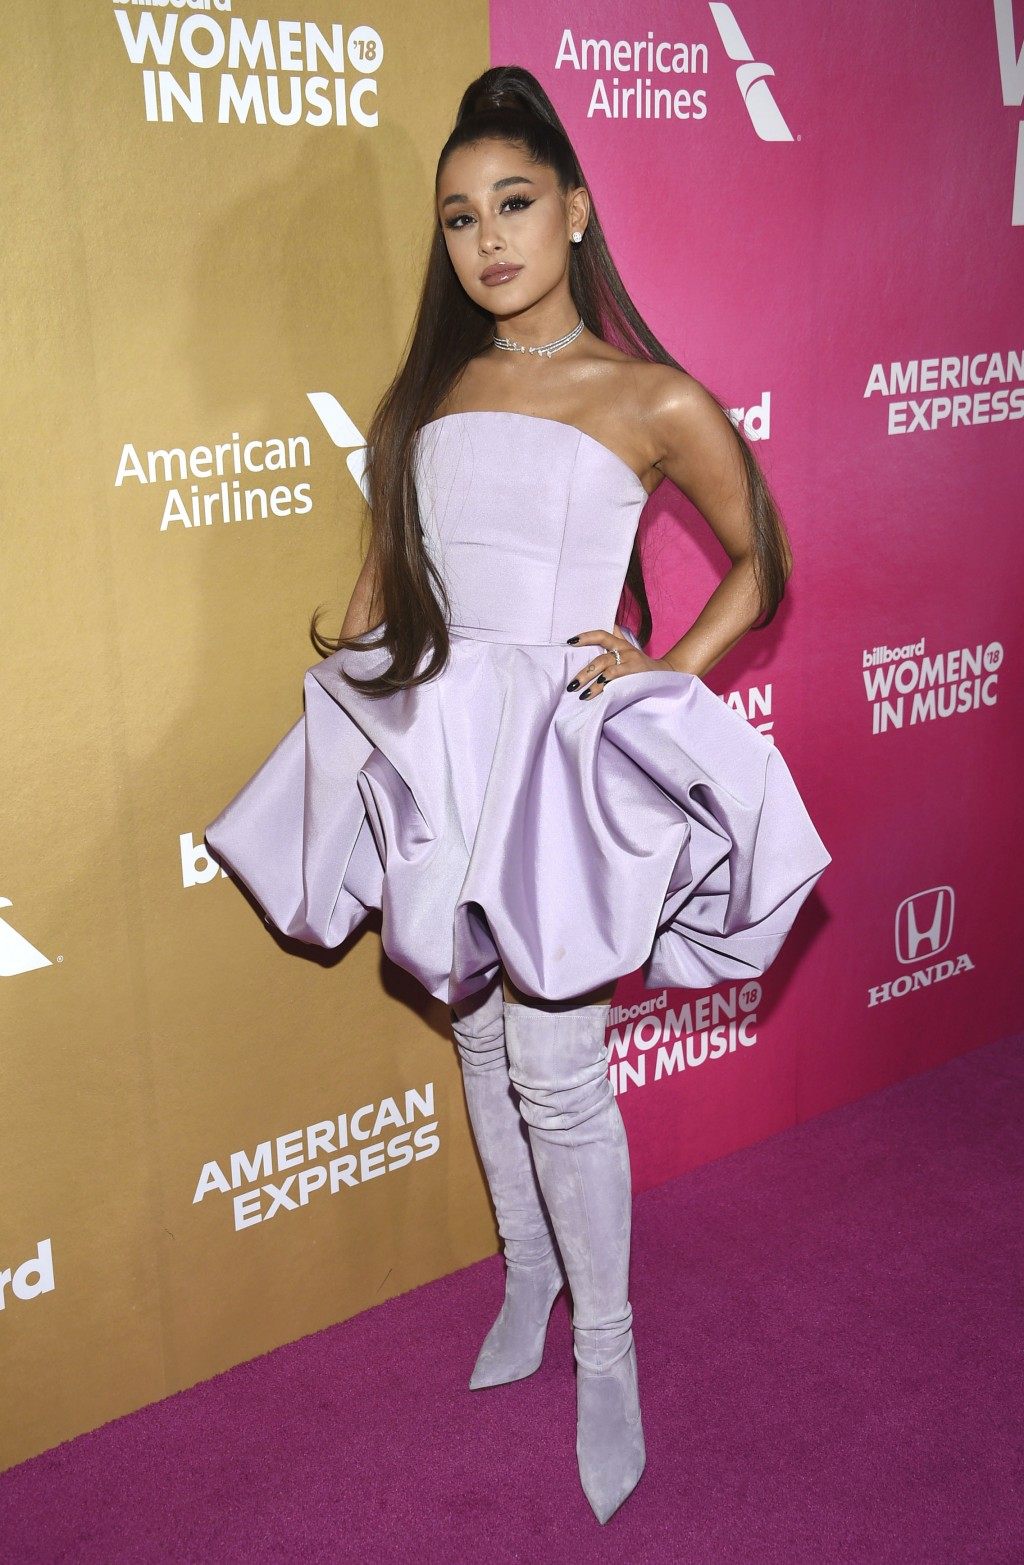 Ariana Grande attends the 13th annual Billboard Women in Music event at Pier 36 on Thursday, Dec. 6, 2018, in New York. (Photo by Evan Agostini/Invisi